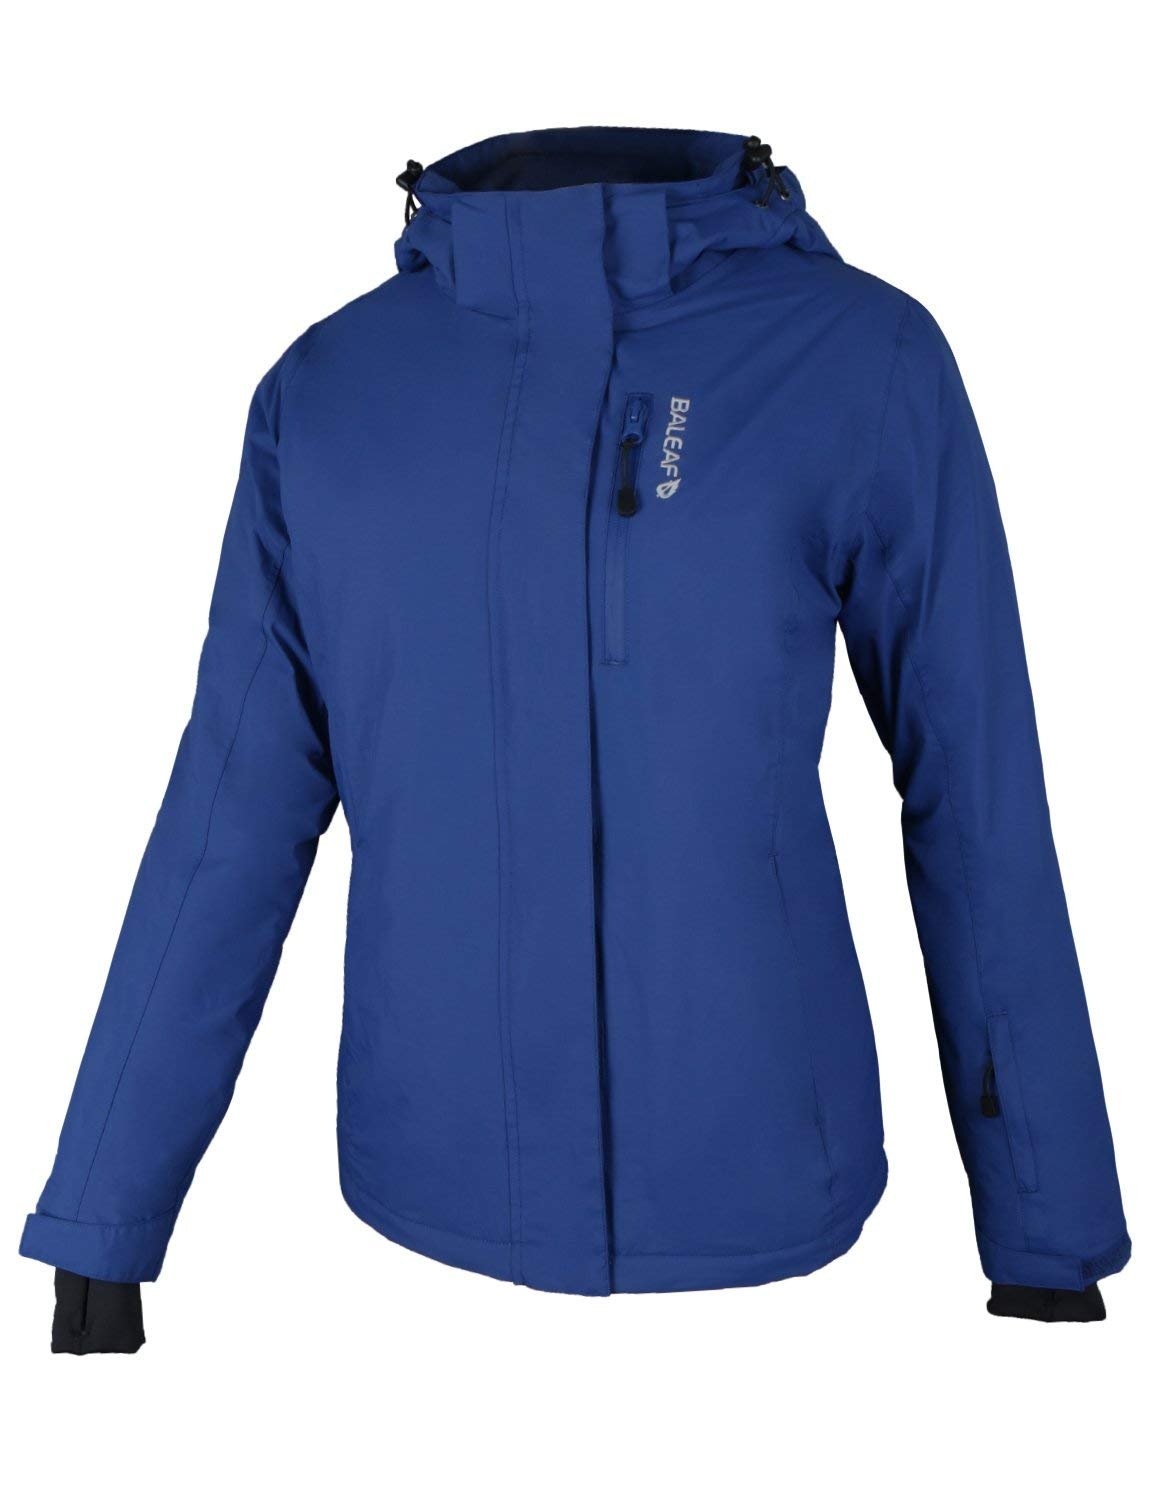 BALEAF Womens Insulated Ski Jackets Waterproof Breathable Mountain Hooded Winter Jacket for Skiing, Hunting Navy Size 3XL by BALEAF